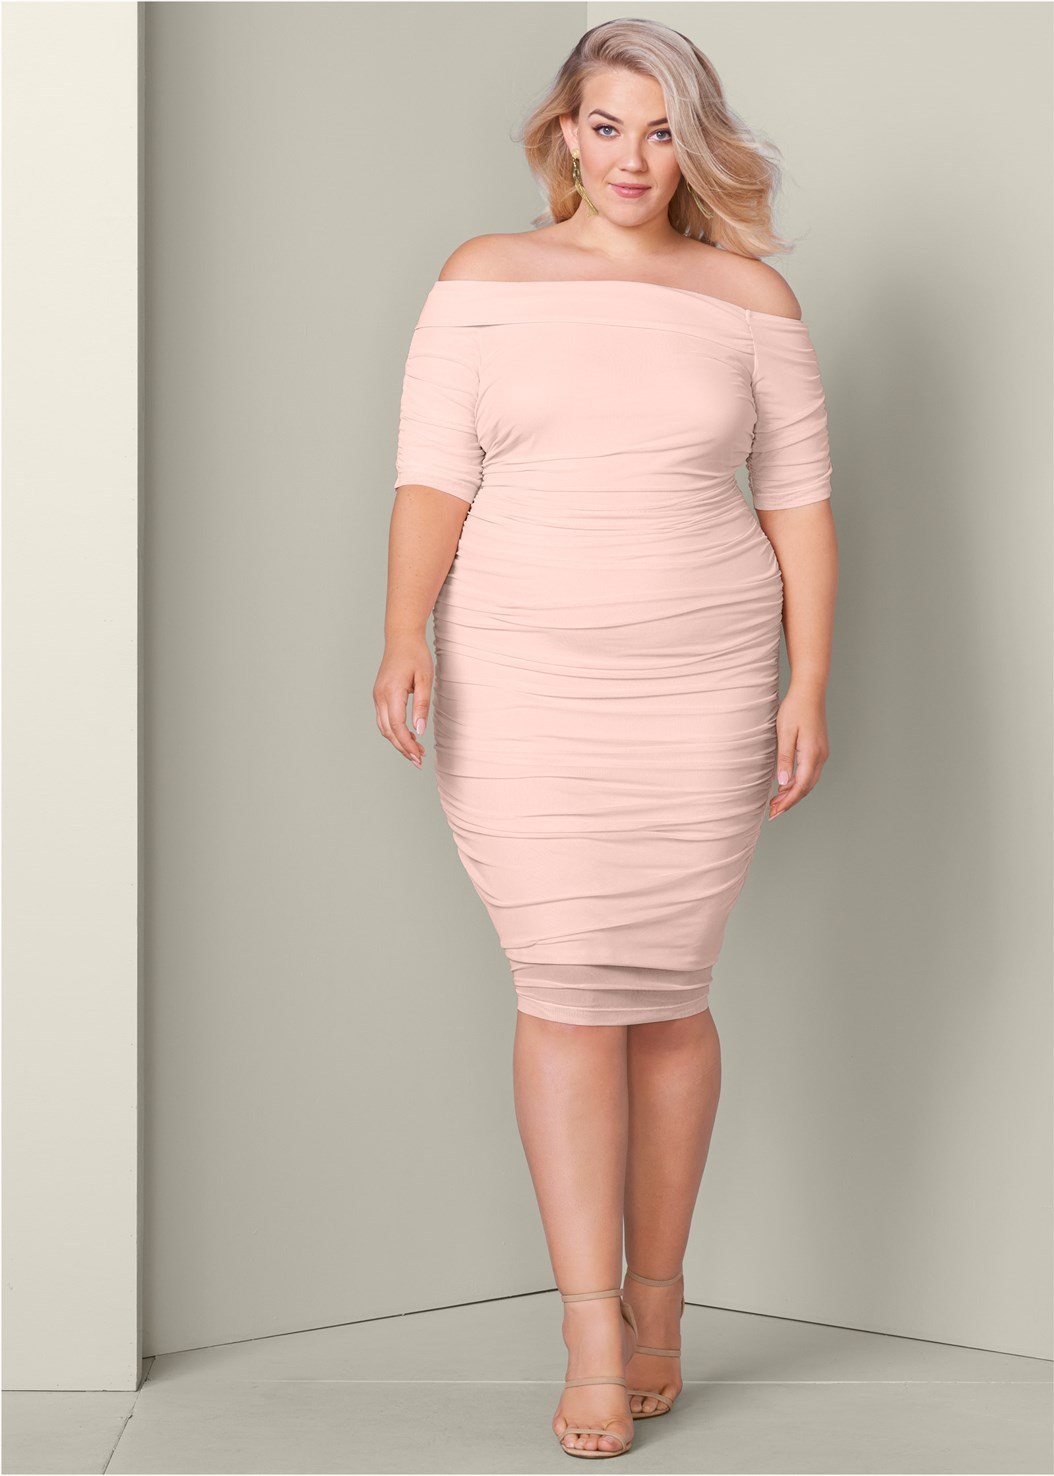 20 of the Prettiest of Spring\'s Plus Size Dresses to Kick off Your ...